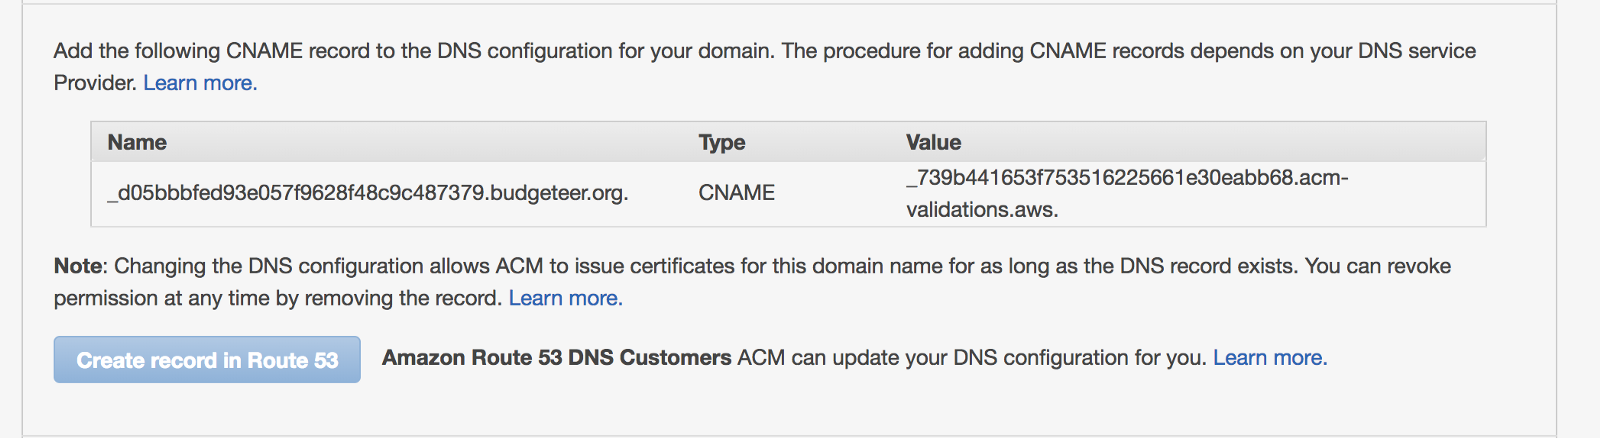 Getting A Free Ssl Certificate On Aws A How To Guide